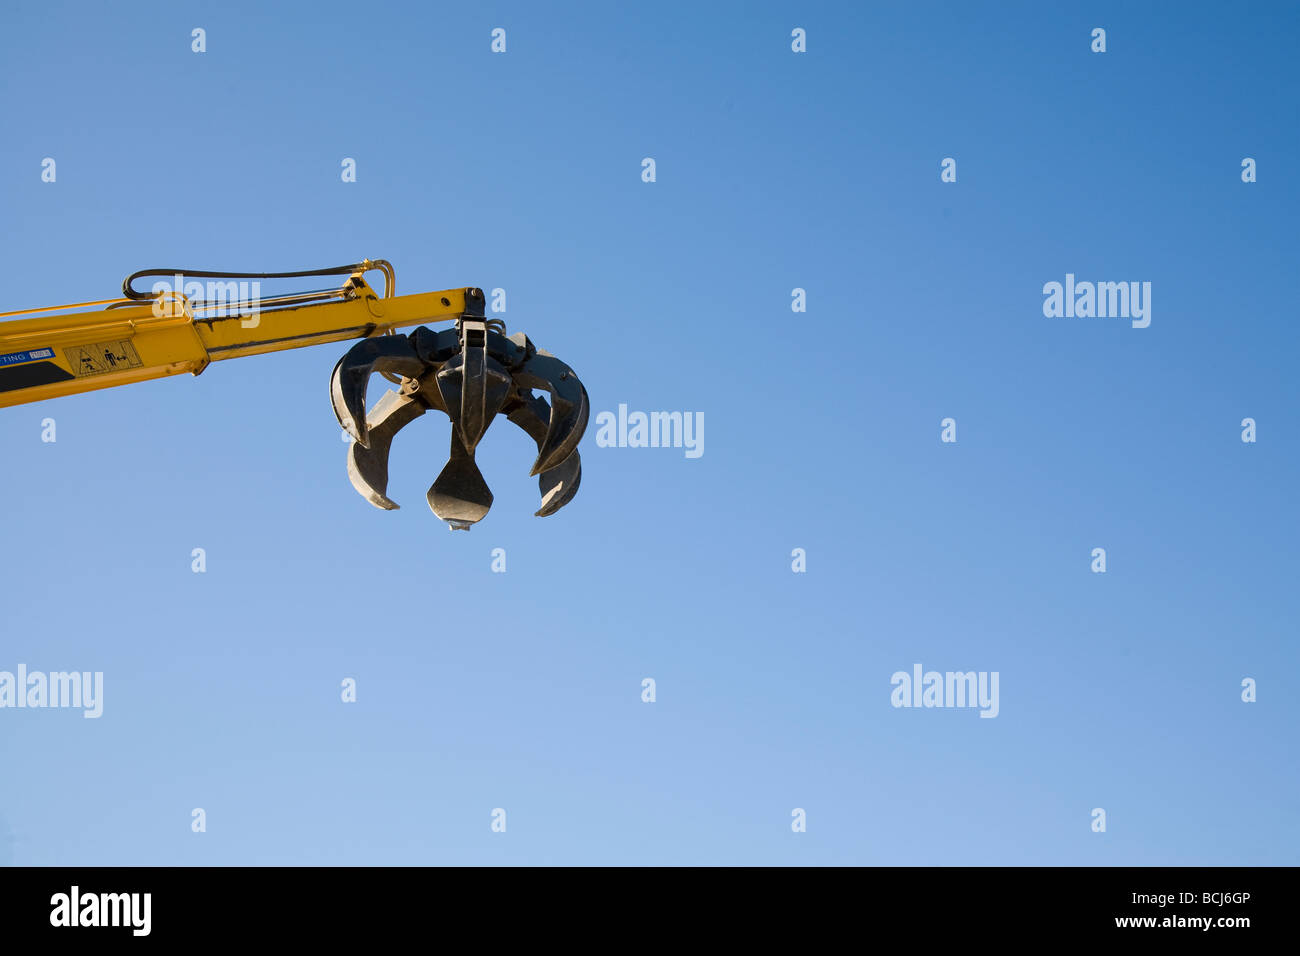 Claw of yellow mechanical machine used for picking up scrap metal at reclycling yard against blue sky Indio California - Stock Image